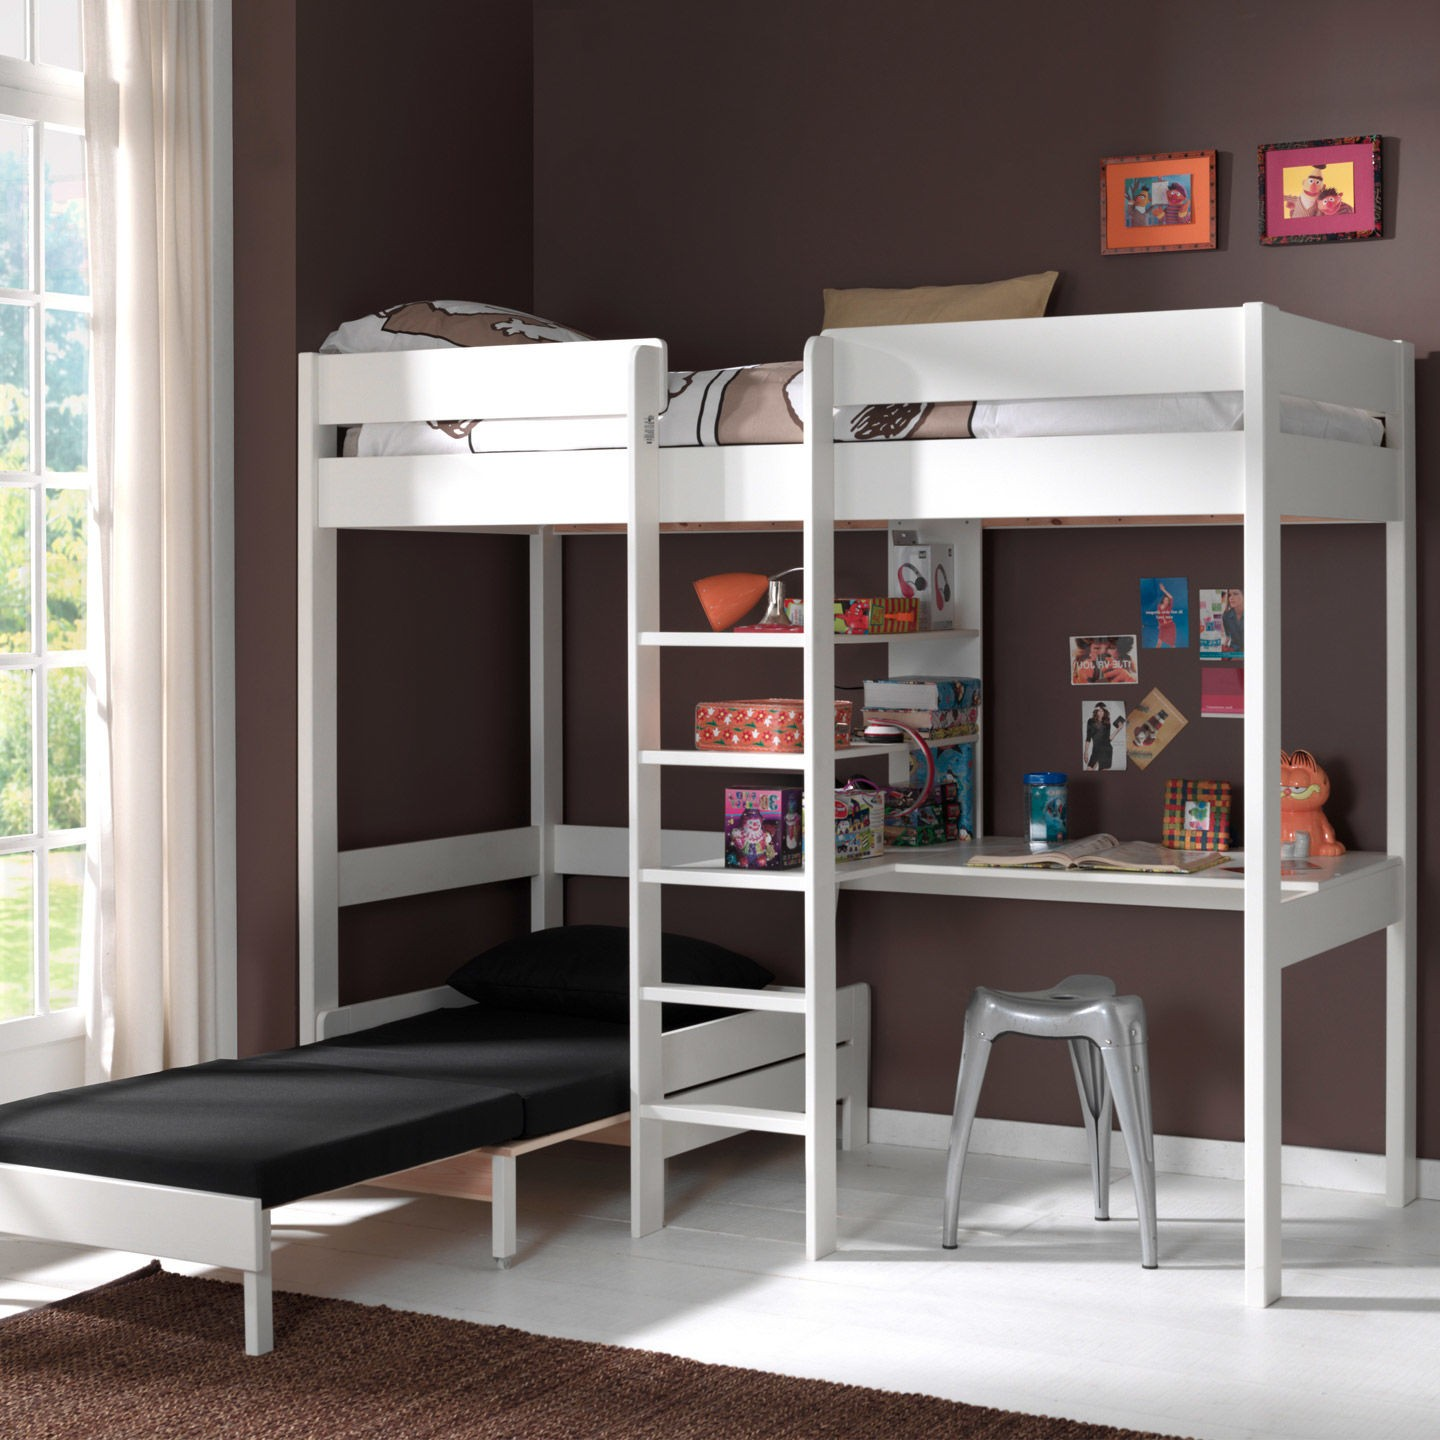 lit superpos bureau ikea bureau id es de d coration. Black Bedroom Furniture Sets. Home Design Ideas